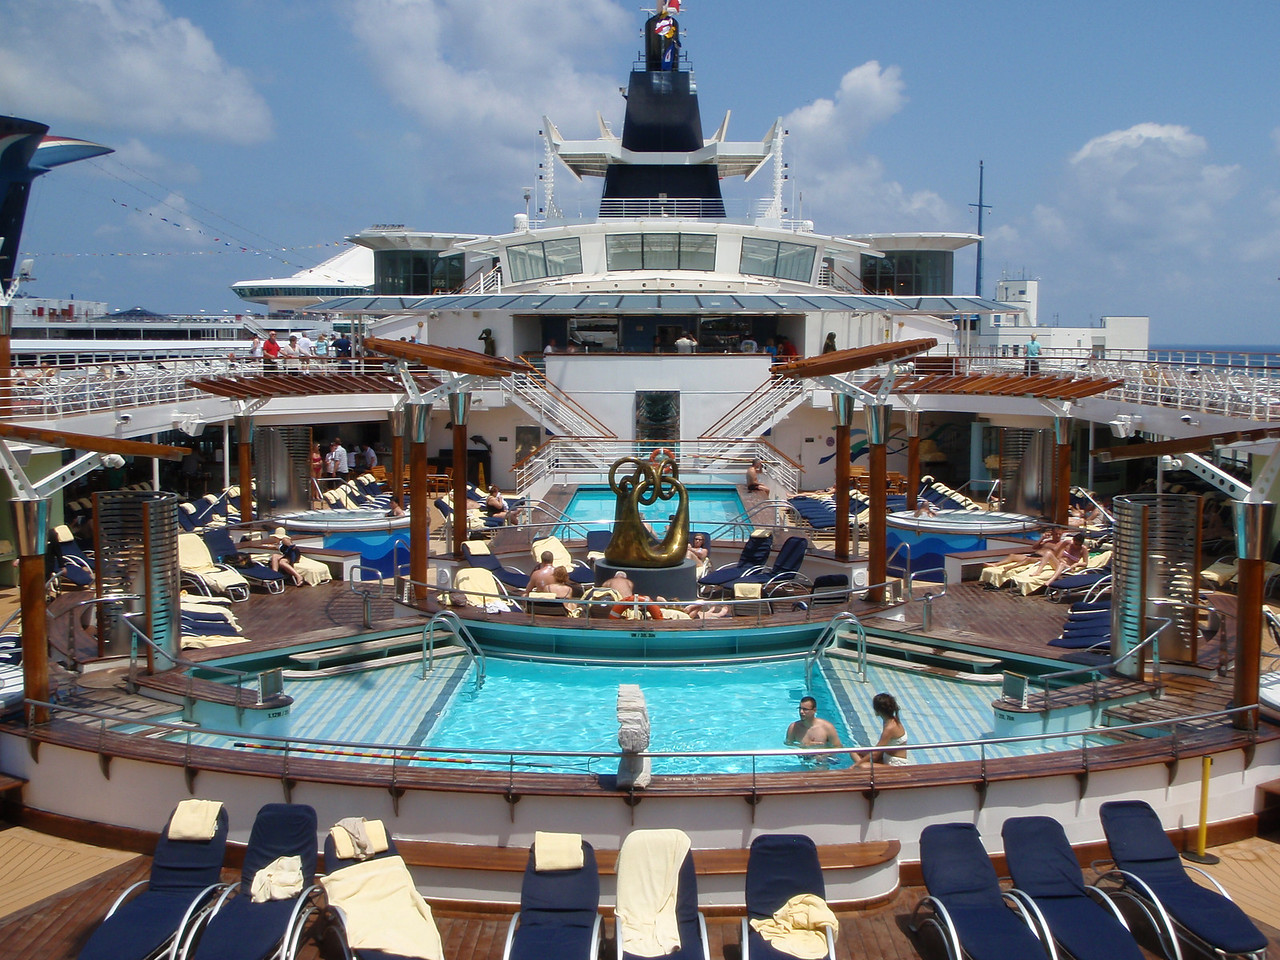 We took a quick stroll around the ship after dropping off our carry-on luggage in our cabin.  It did not take long for people to start using the pool deck.